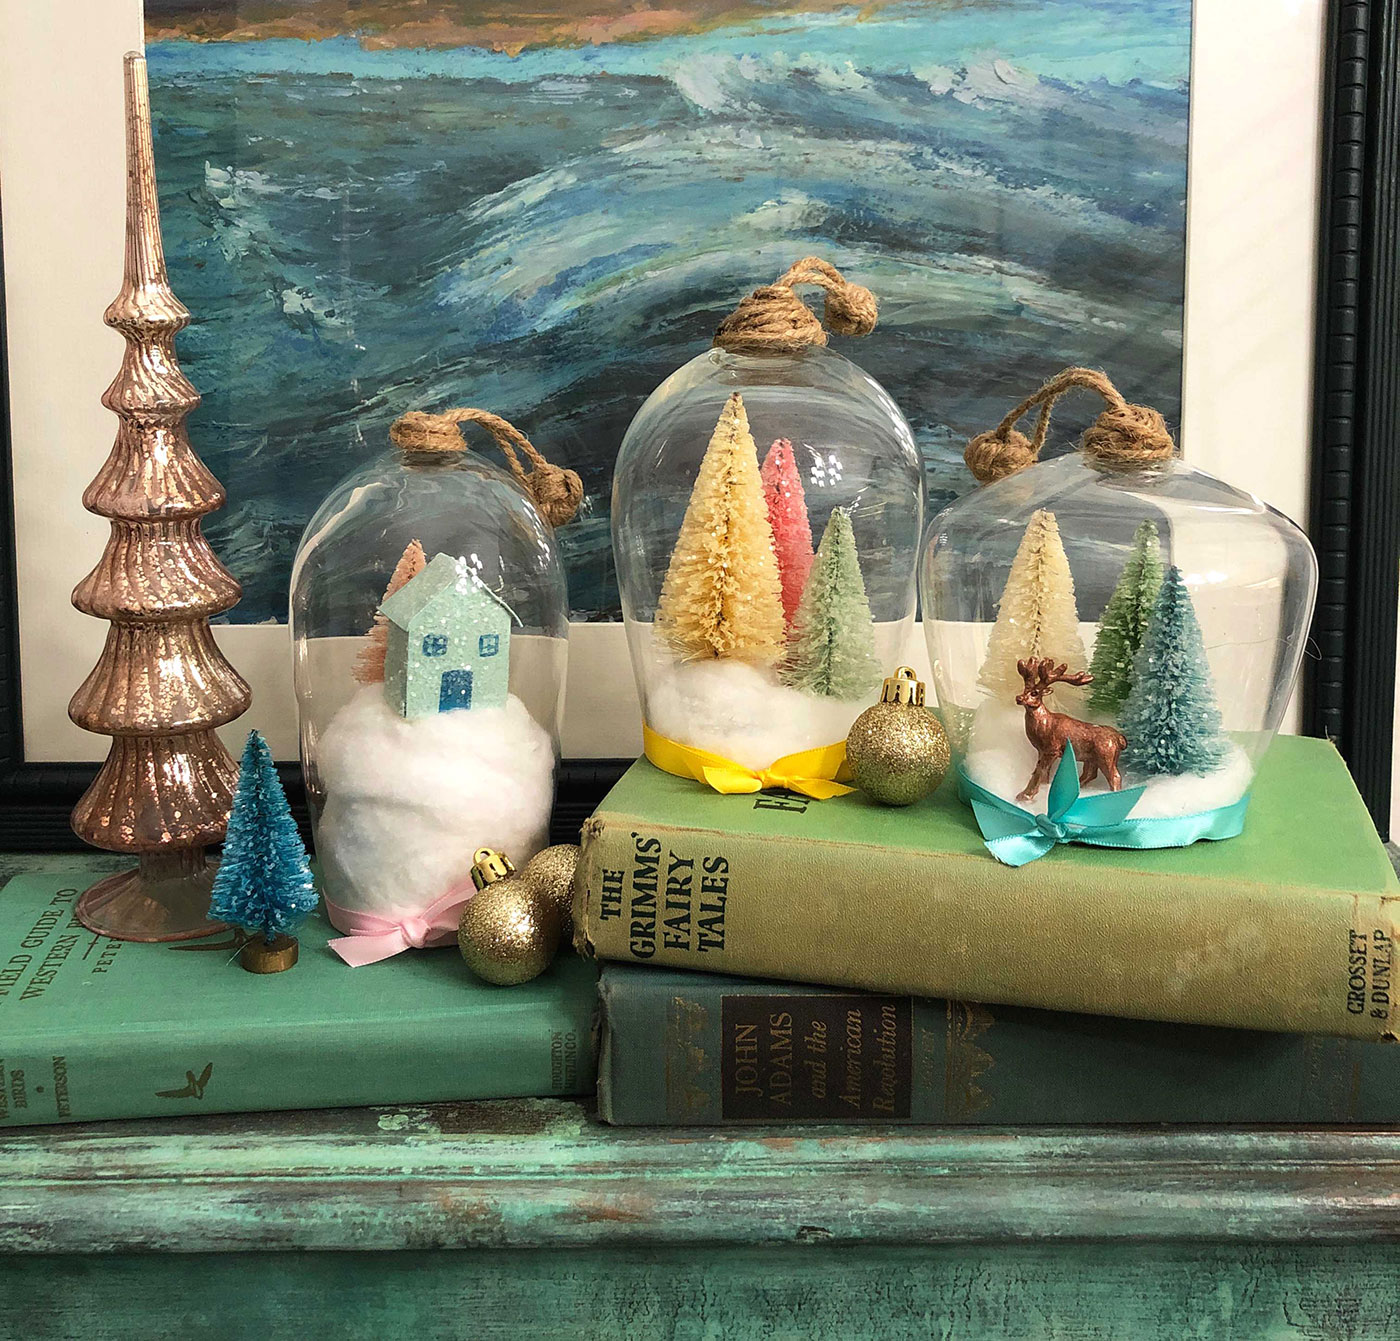 Diy Wine Glass Cloche For Holiday Vignettes Flea Market Finds Home And Garden Decorating Ideas By Expert Interior Decorators